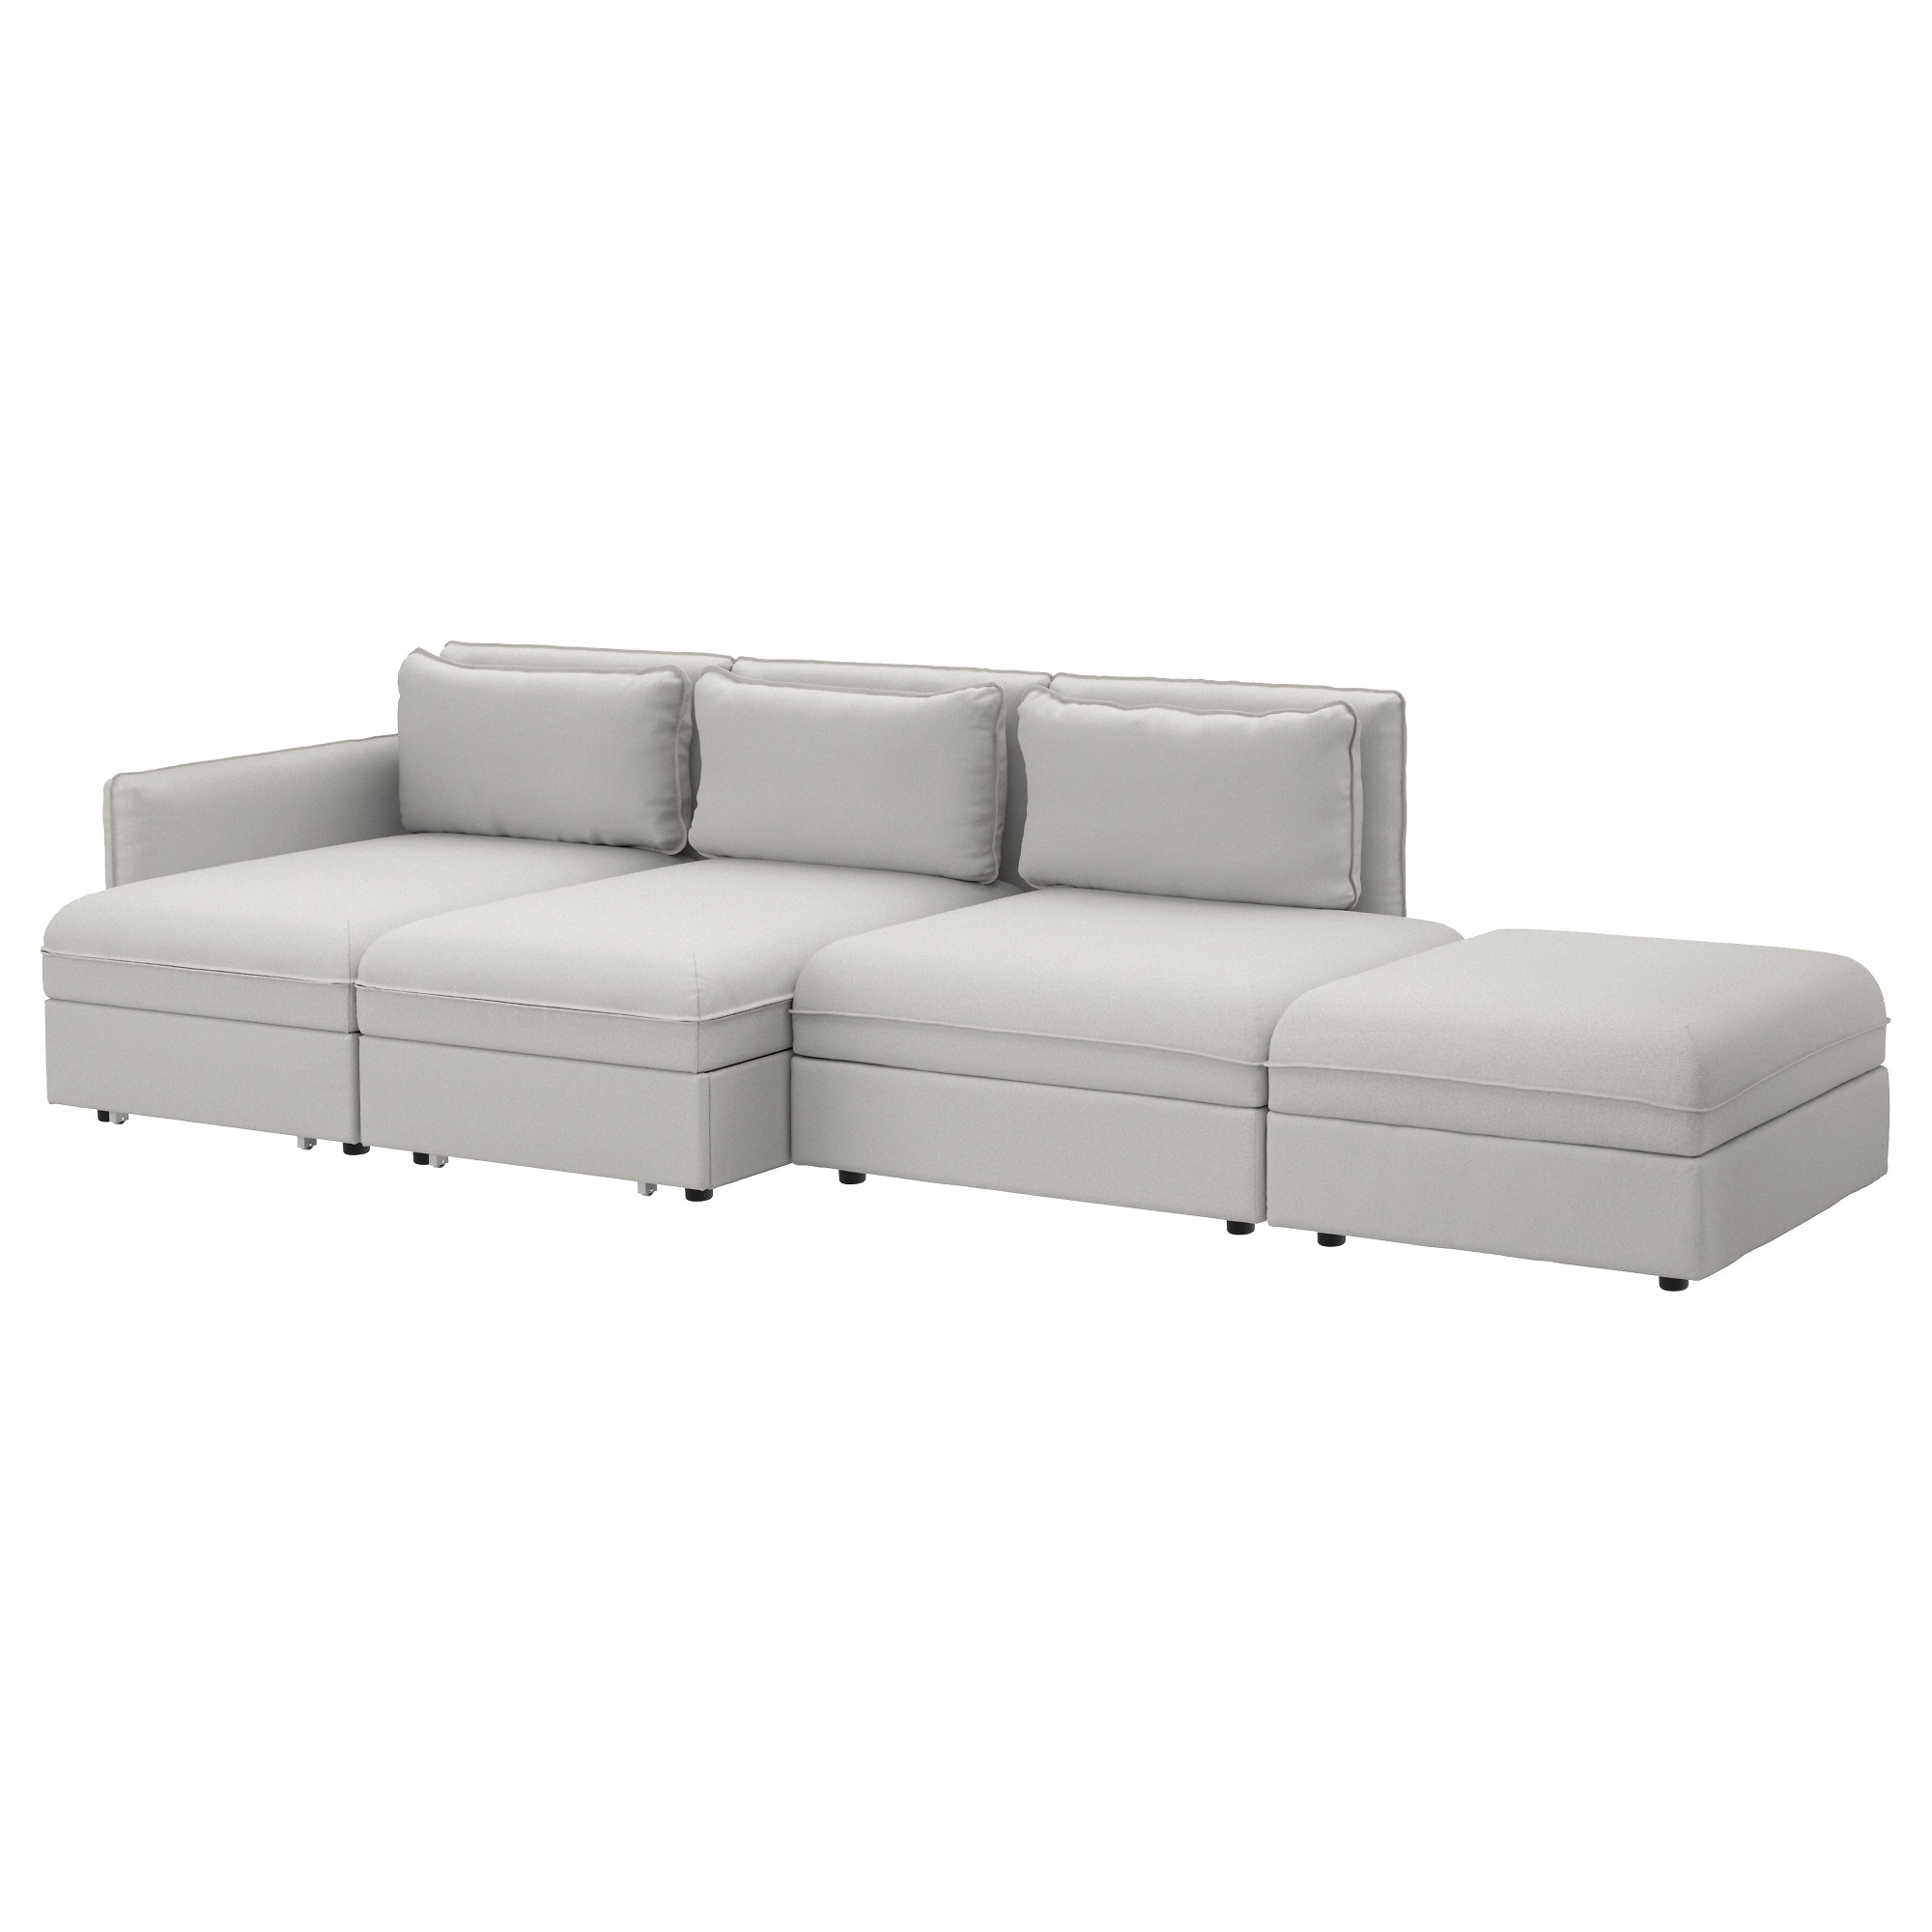 VALLENTUNA 4 seat sofa with bed Orrsta light grey IKEA